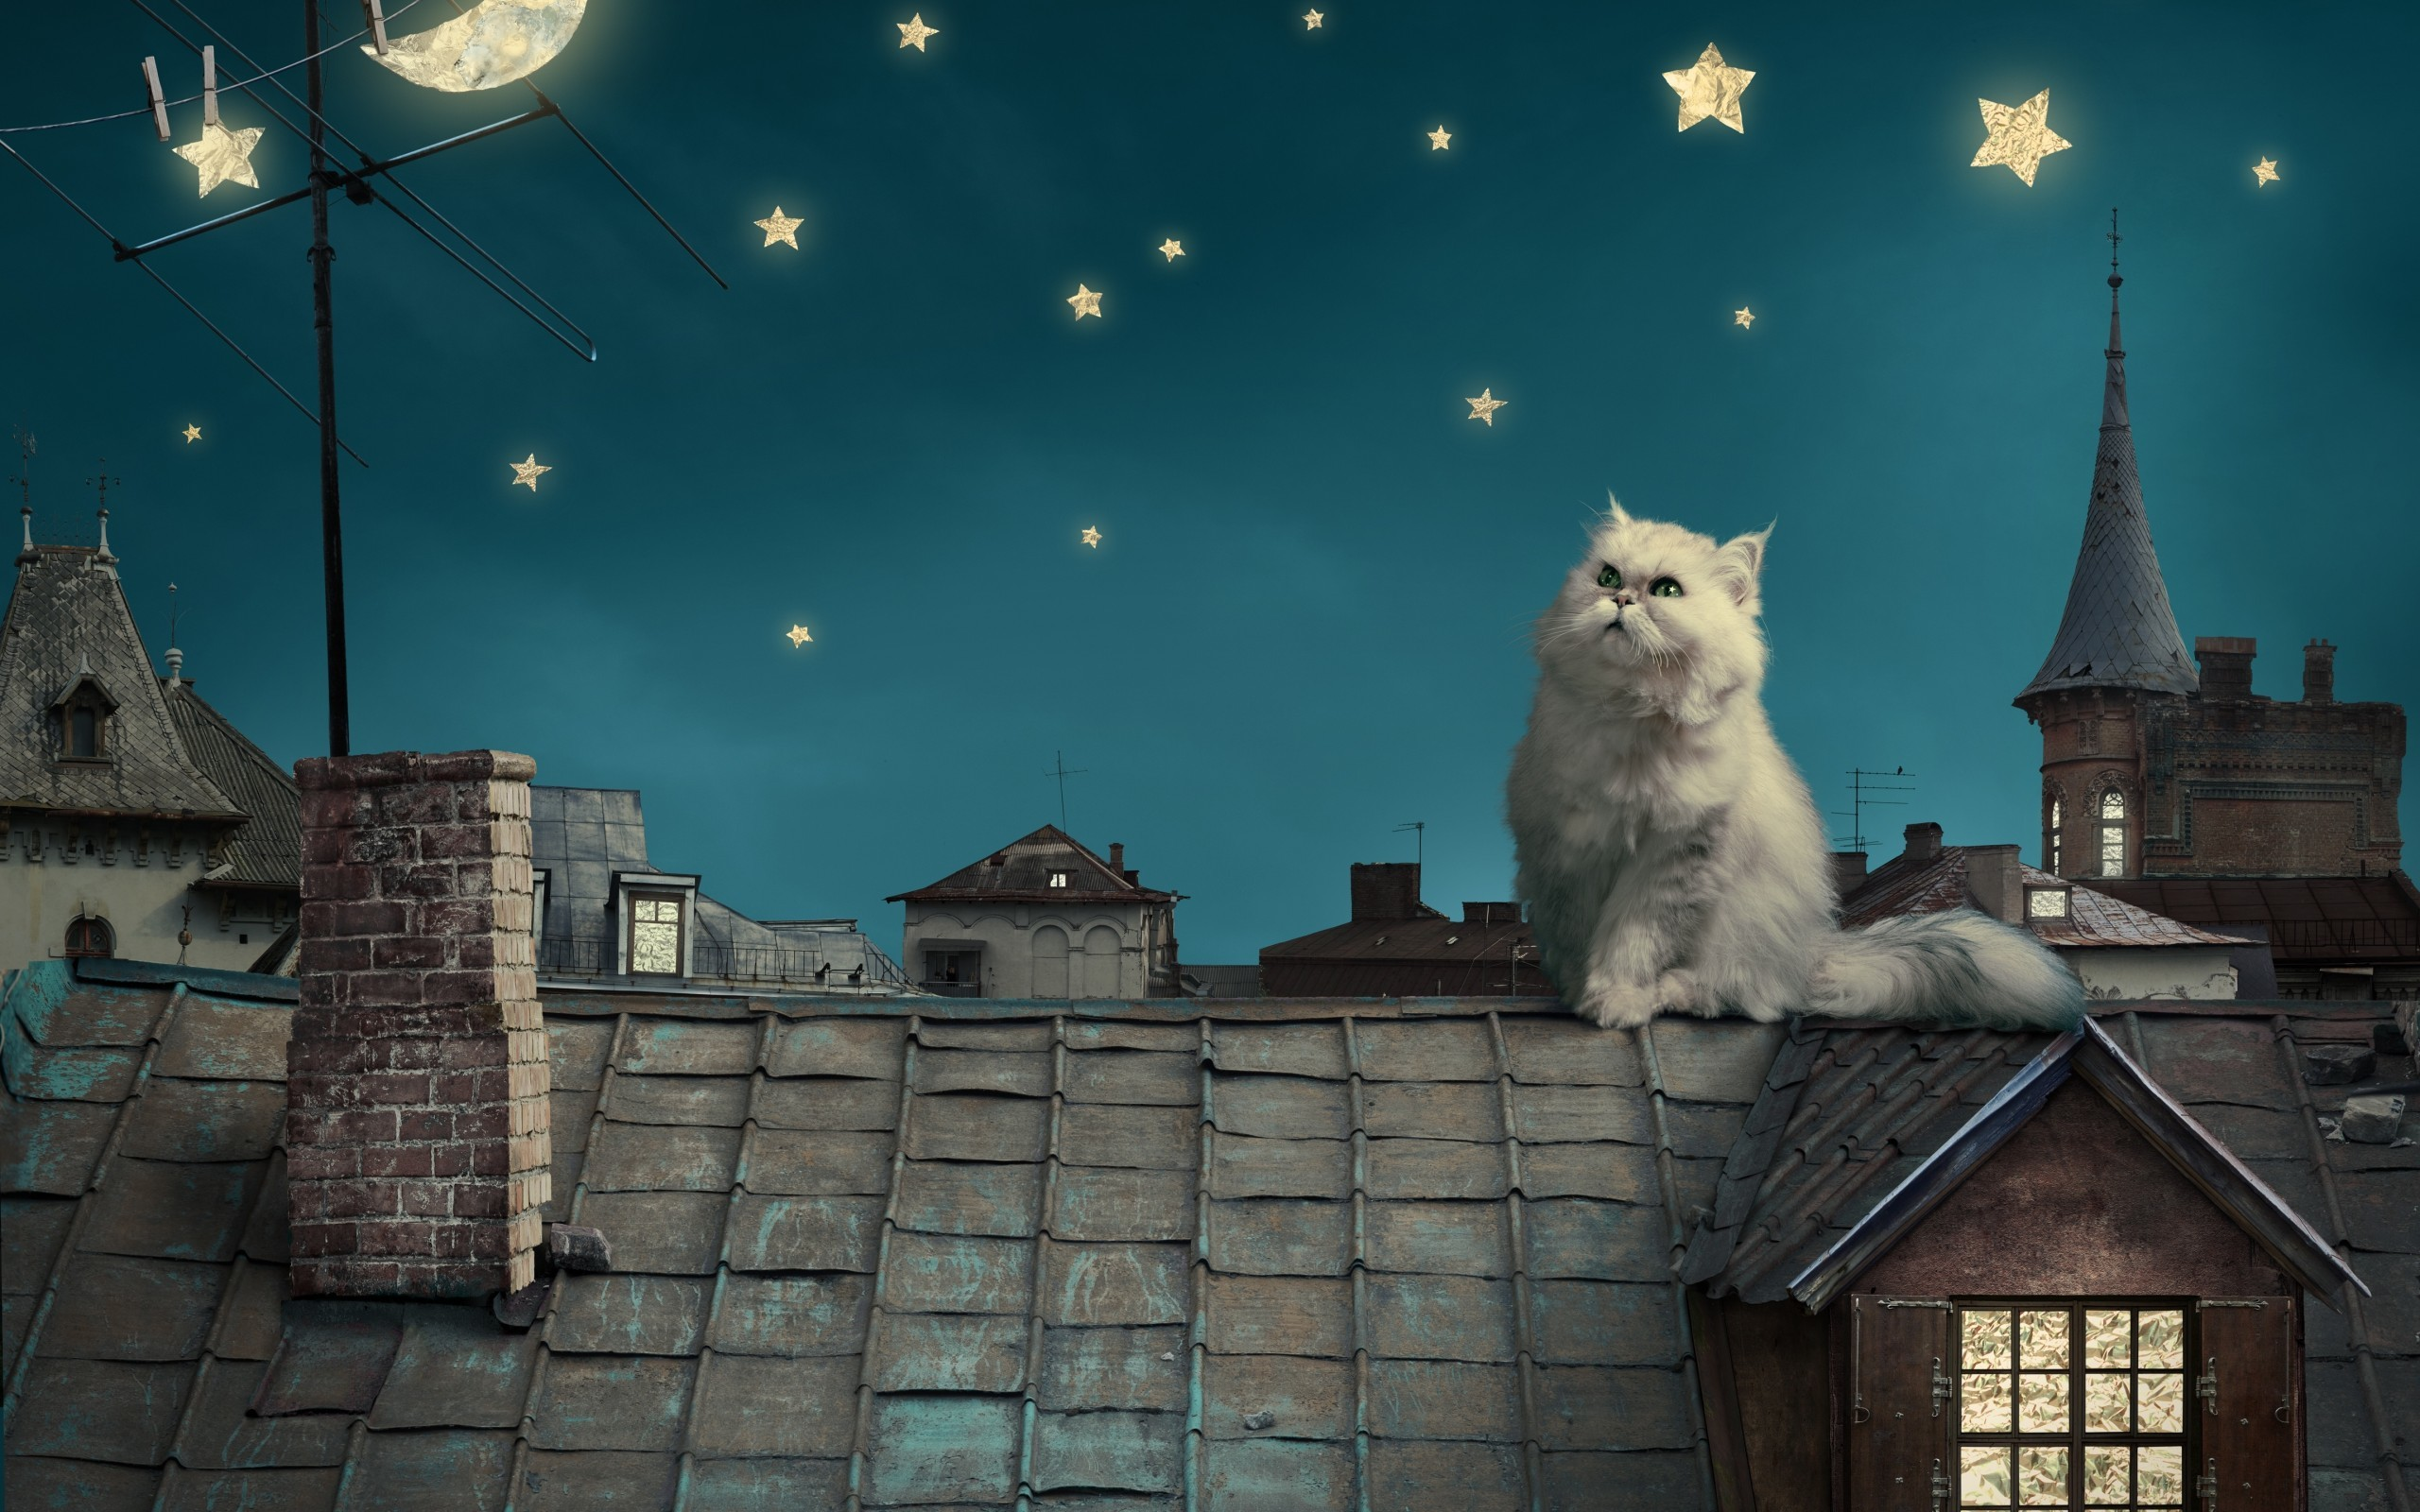 2560x1600 Persian white cat kitten Fairytale fantasy roof house sky night stars moon  cities fantasy wallpaper |  | 55916 | WallpaperUP